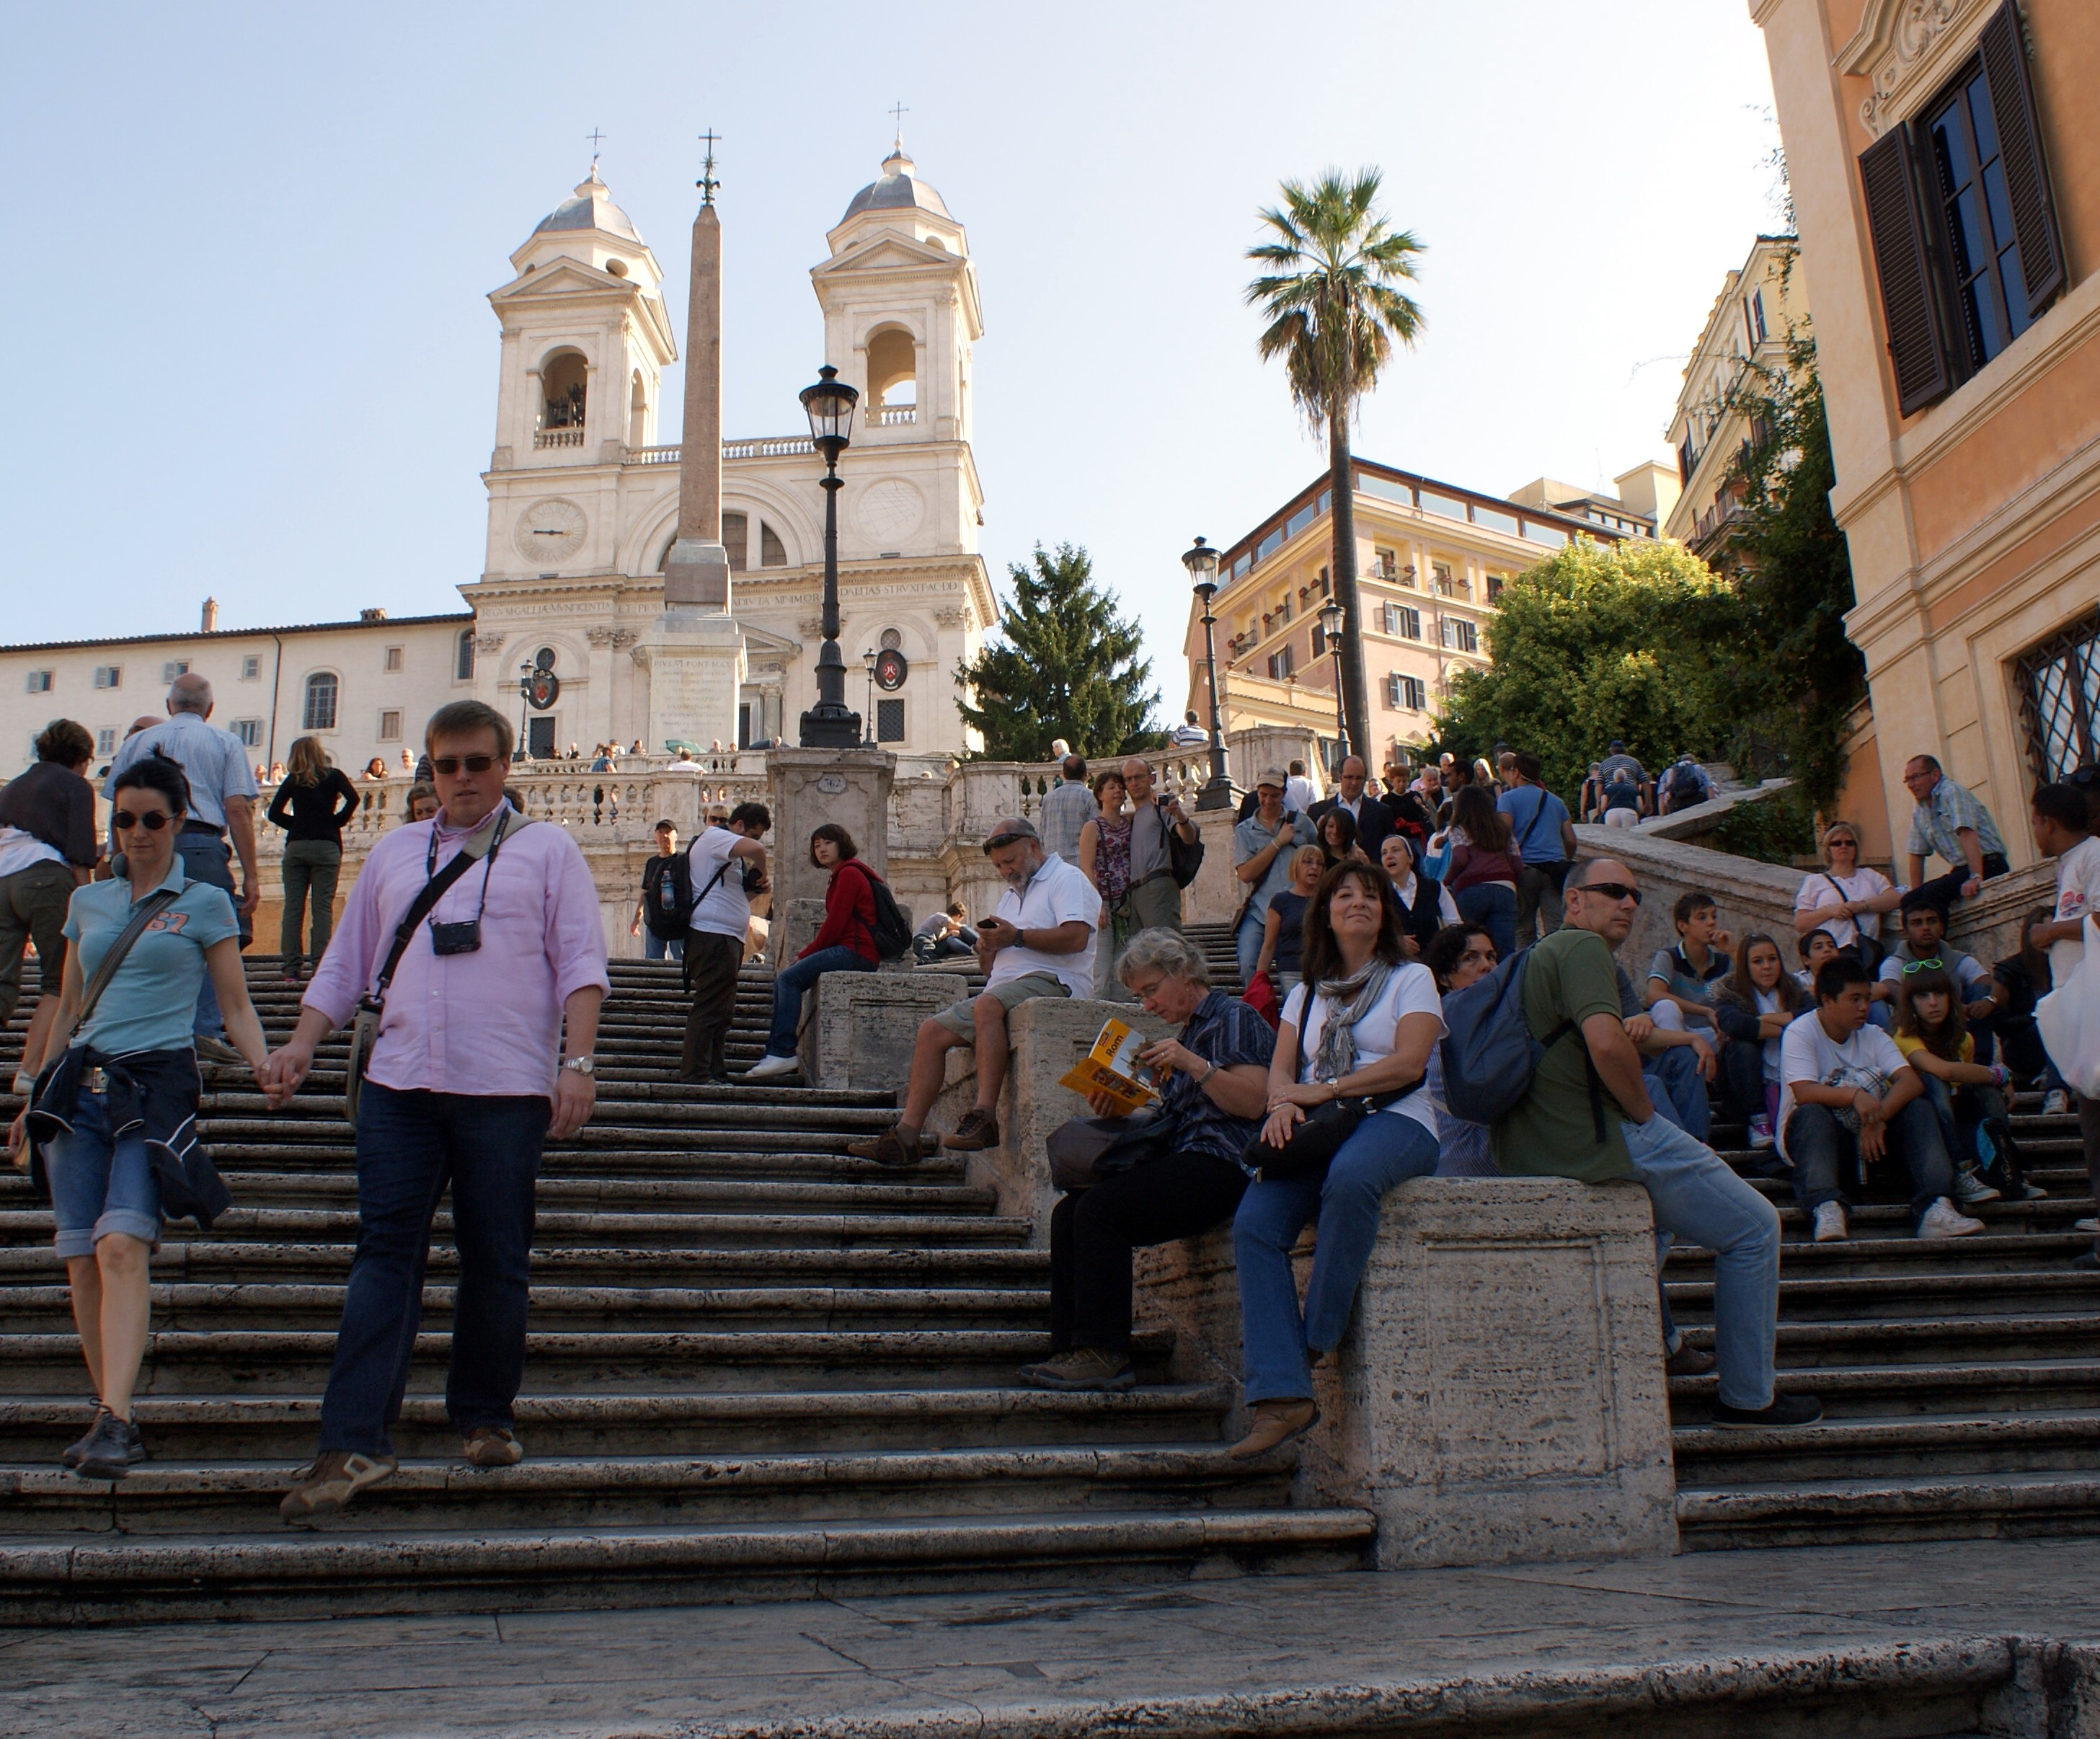 The Spanish Steps in Rome, Italy is a great place to relax. It is one of our 17 amazing sites to check out when in Rome.